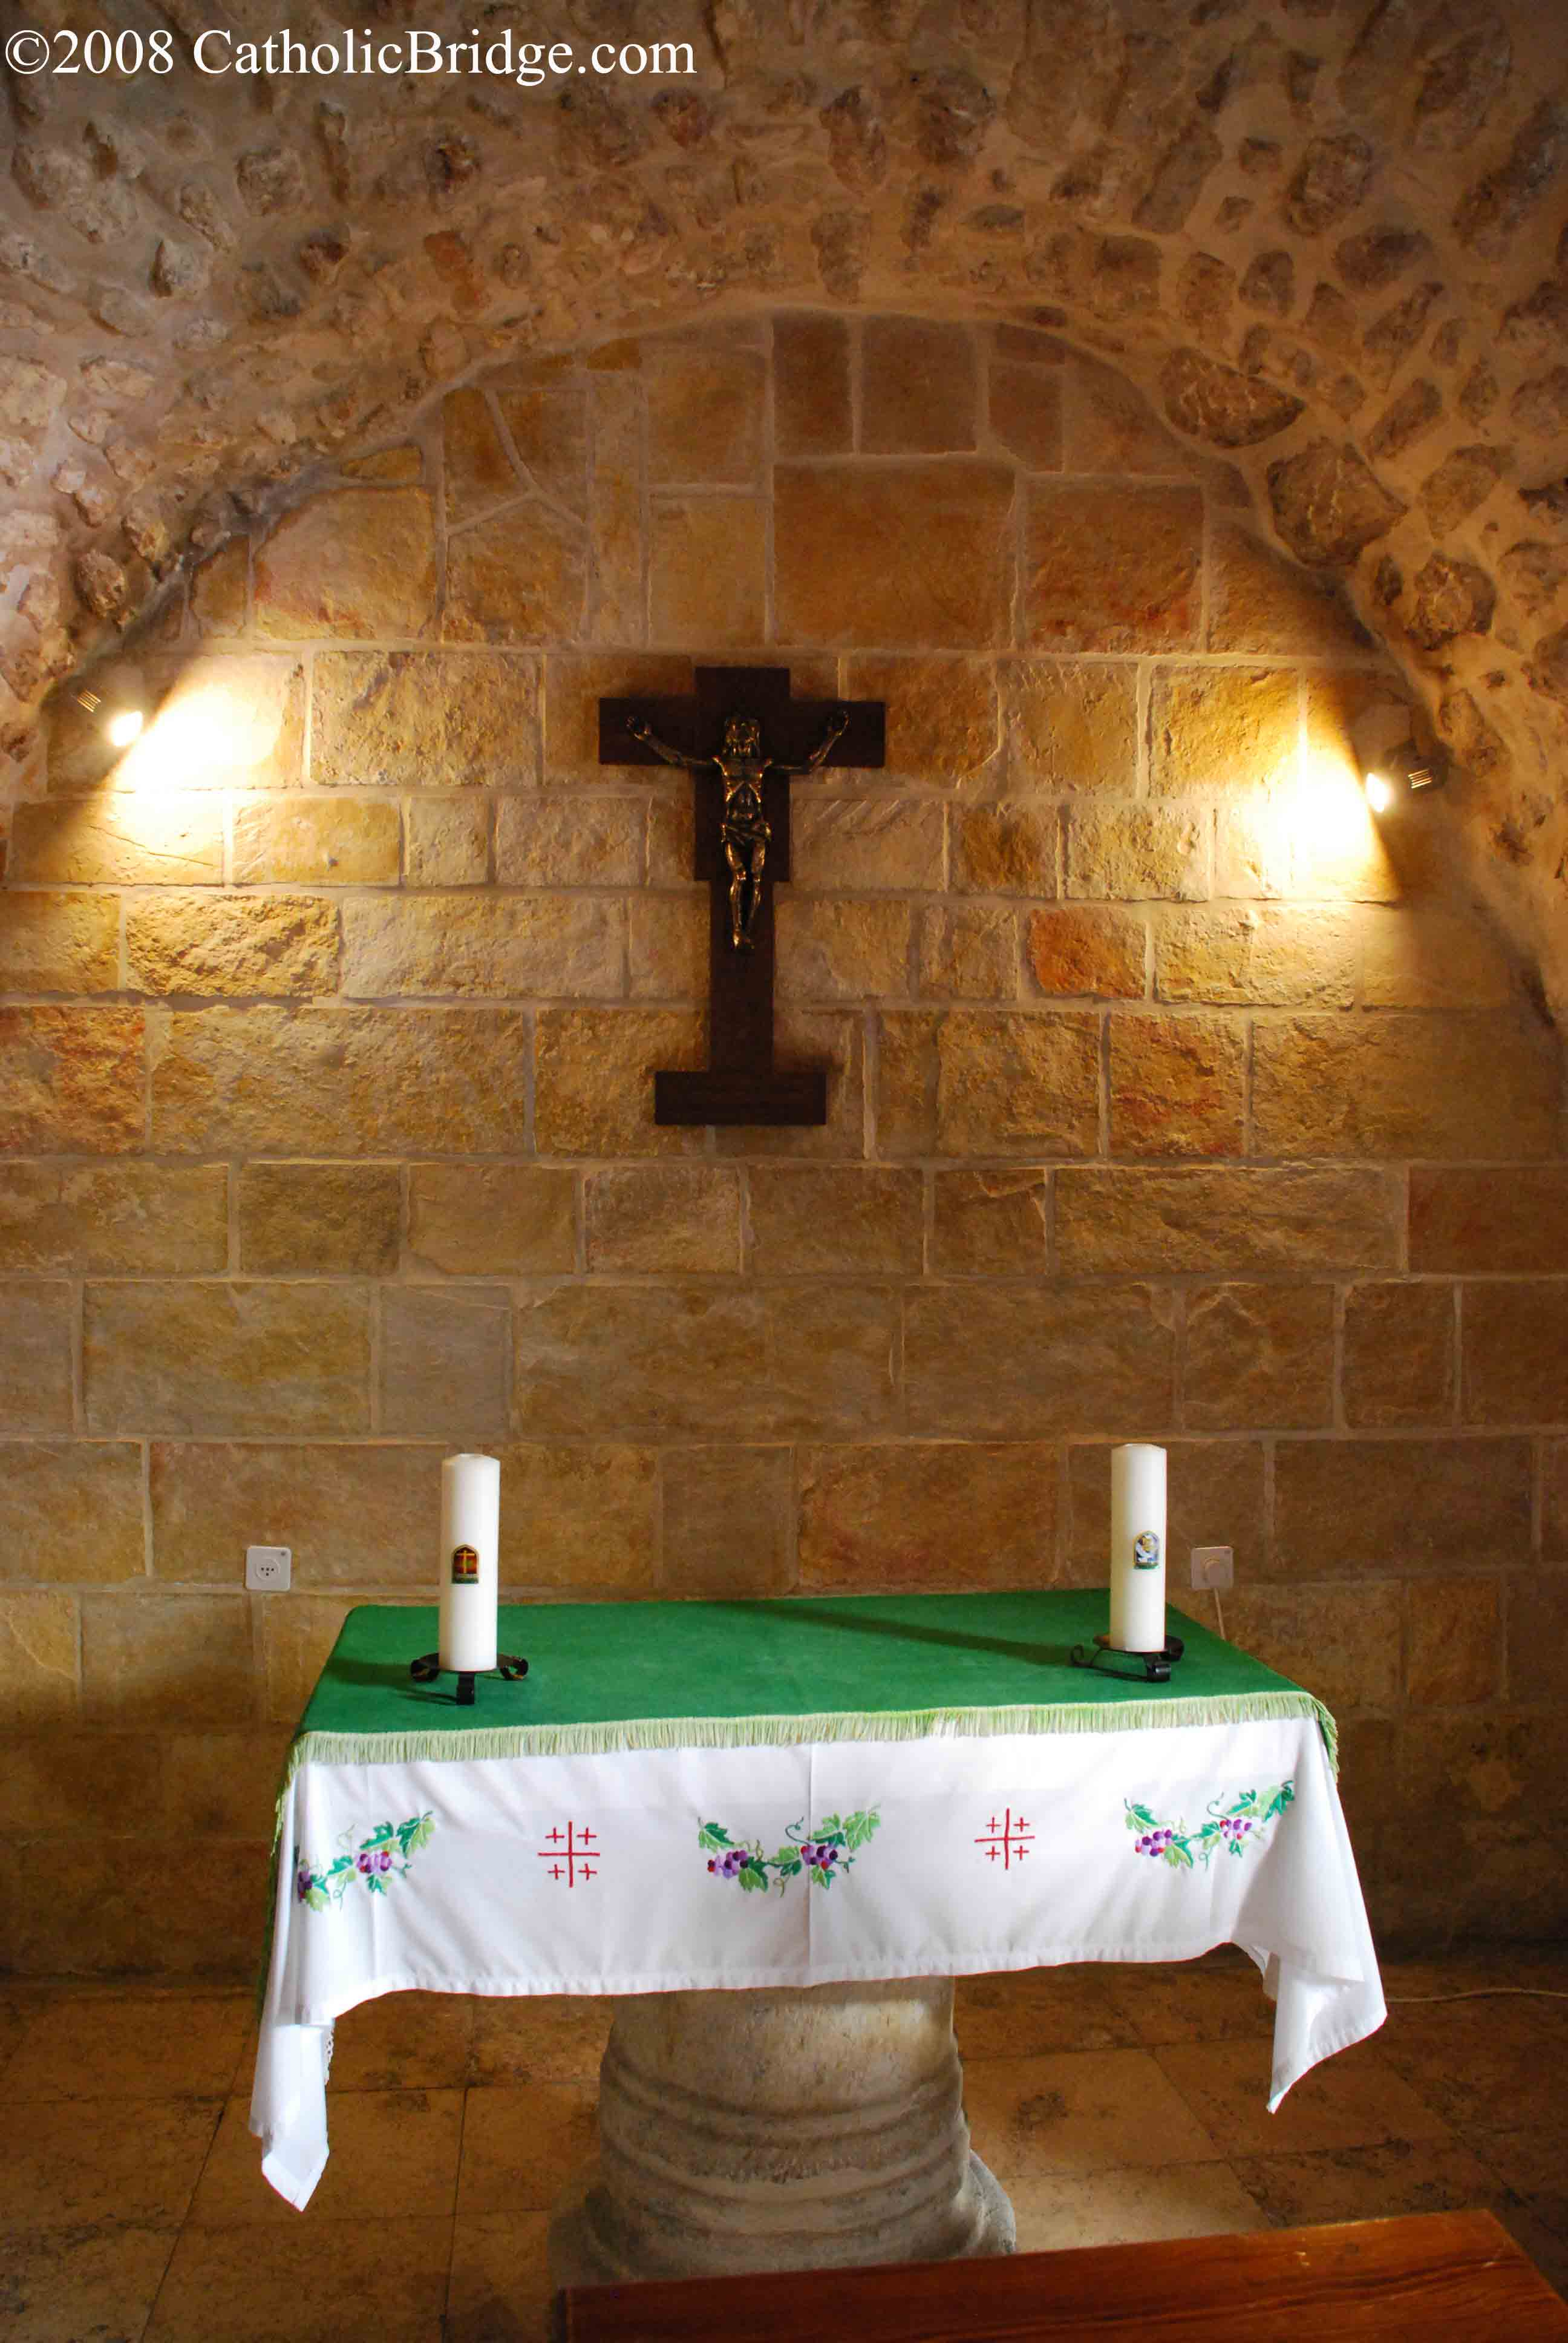 photos of holy land via dolorosa stations of the cross